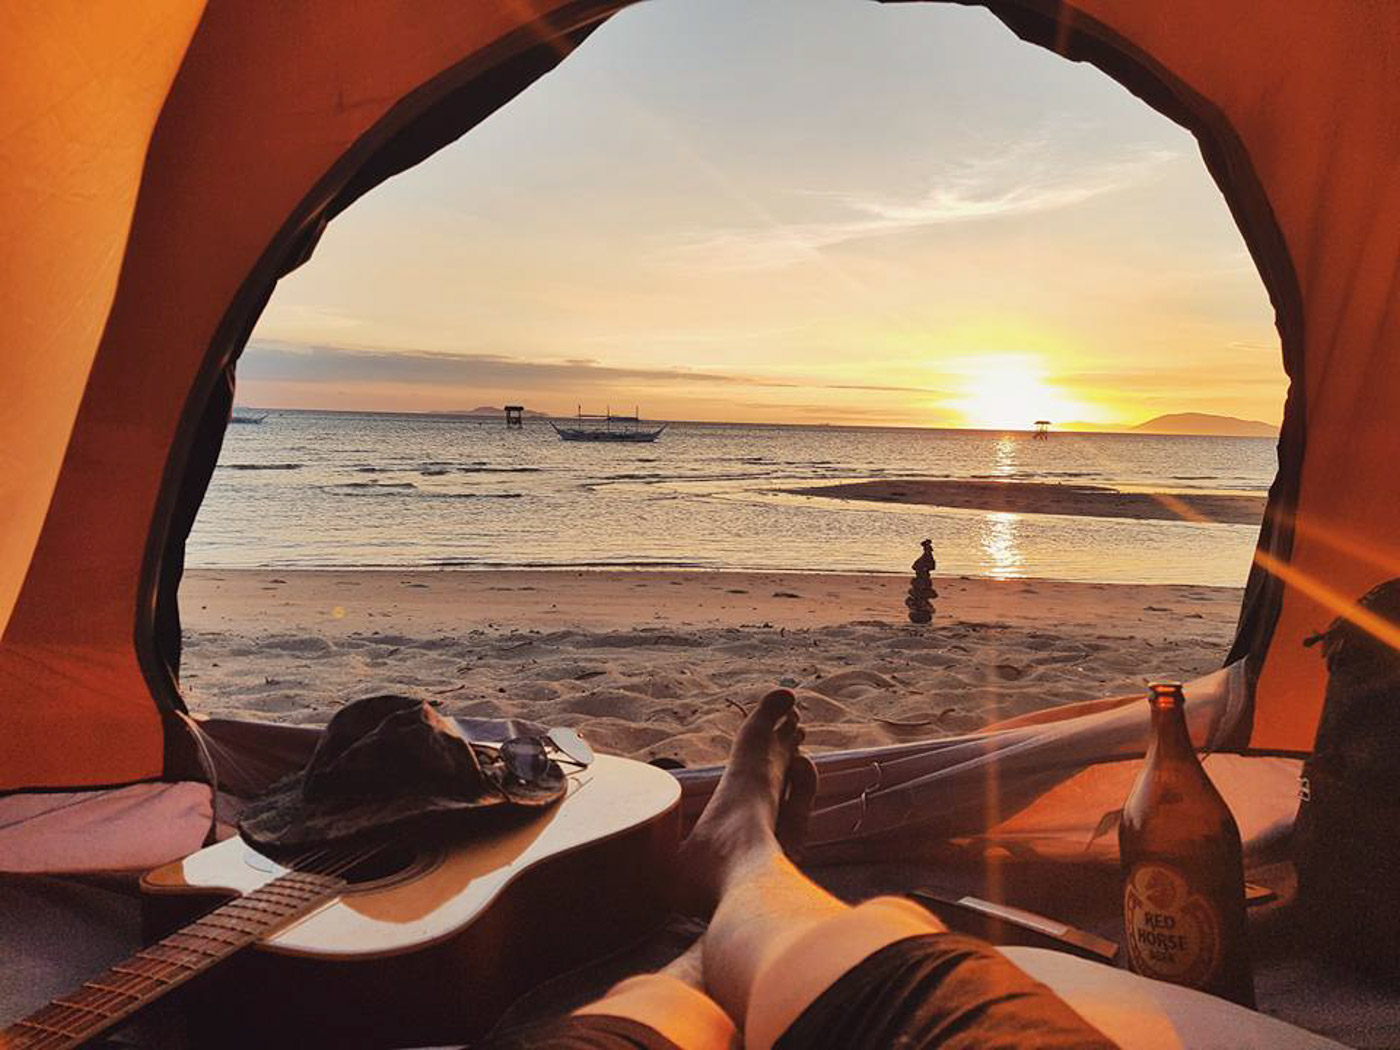 SUNSET VIEW. You can relax and enjoy the sunset from your tent or outside. Photo by Jay Vasquez